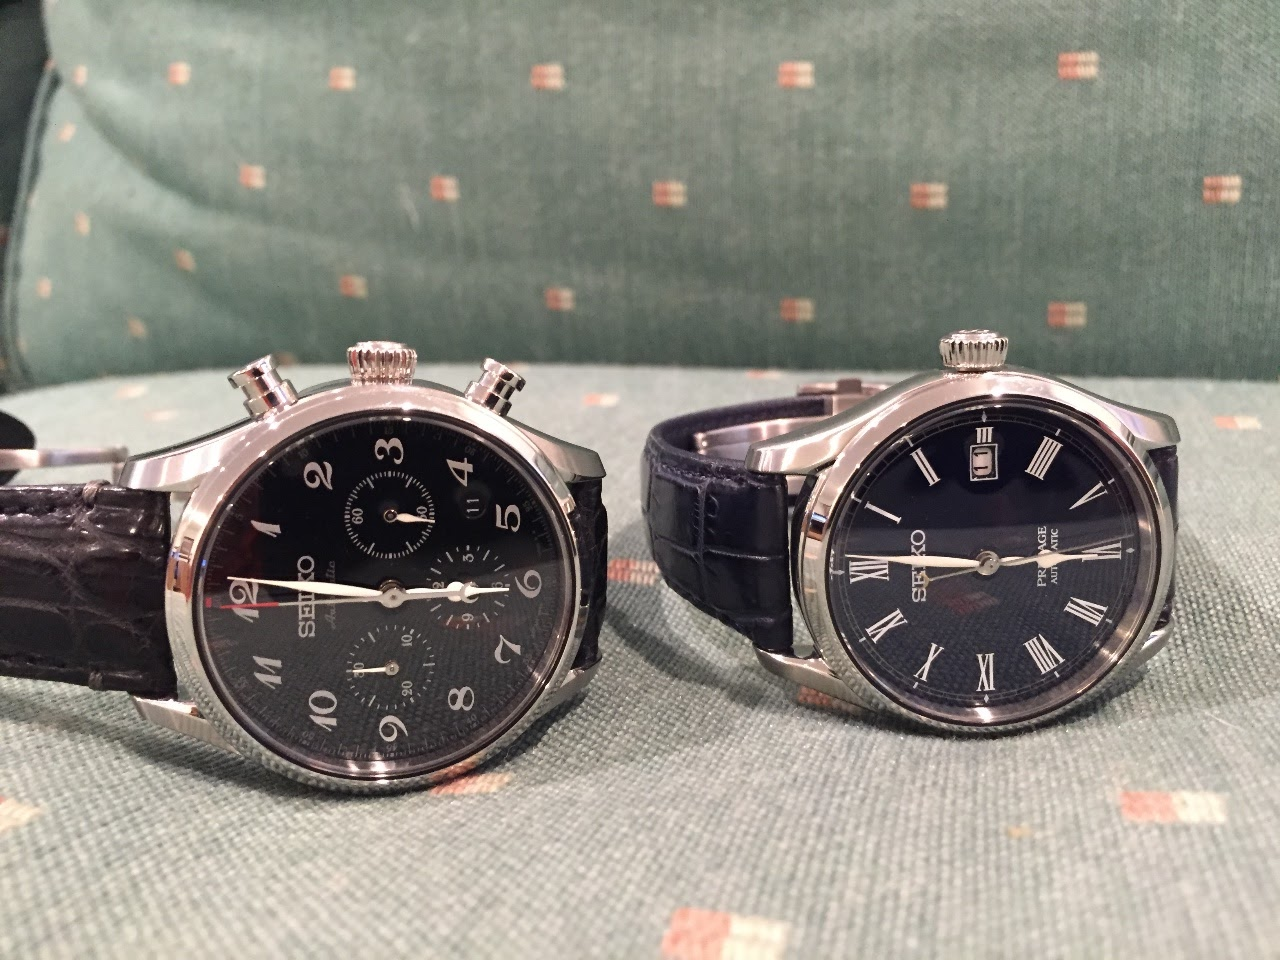 Seiko - Which of these two Presage do you prefer, and why?